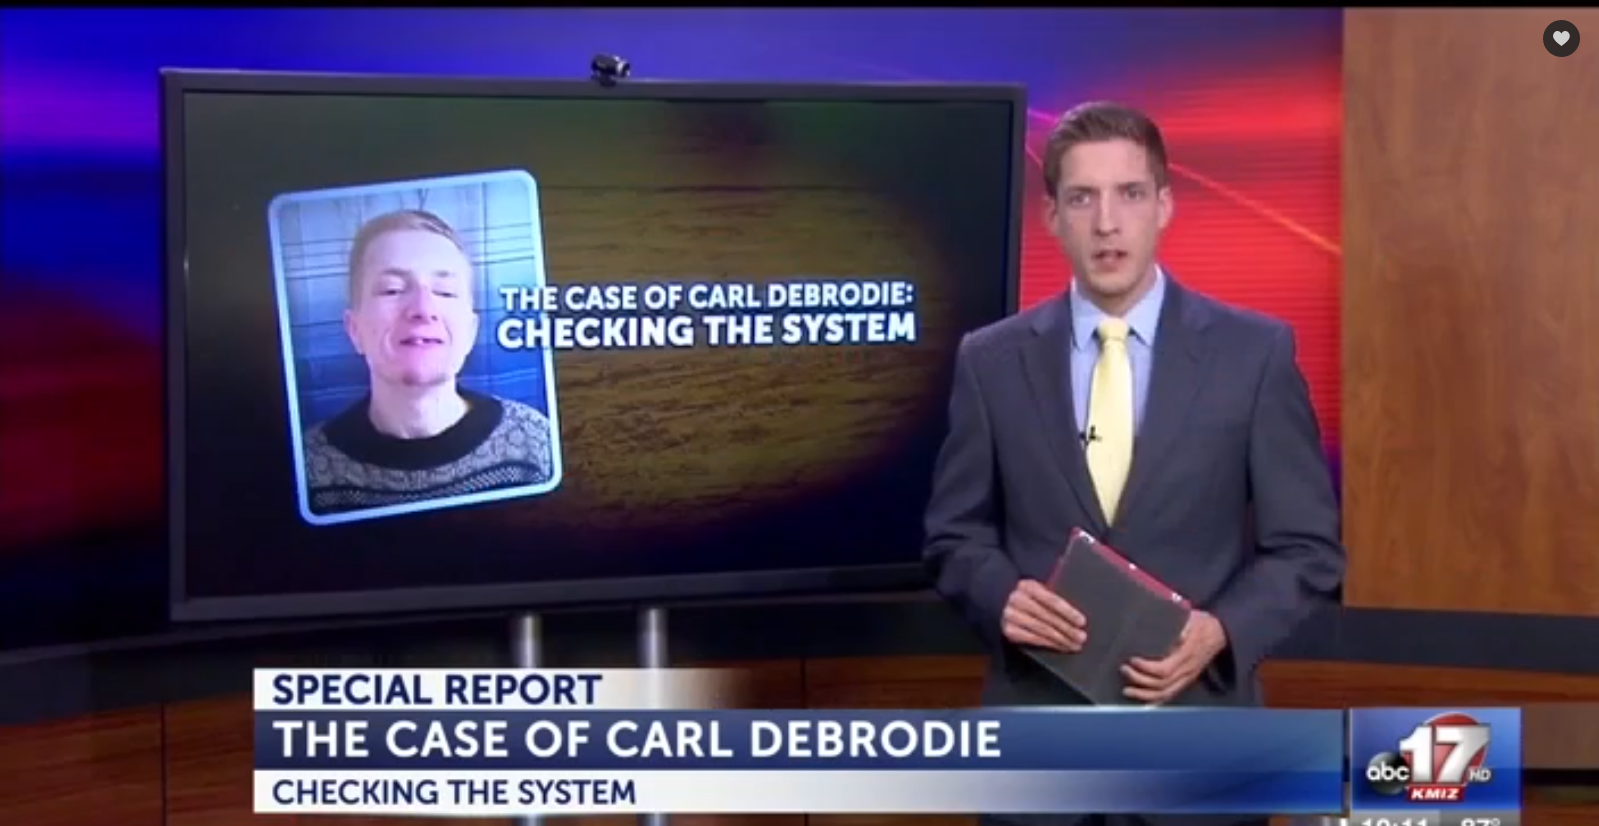 The Case Of Carl DeBrodie: Boone Supported Living CEO identifies problems with the system